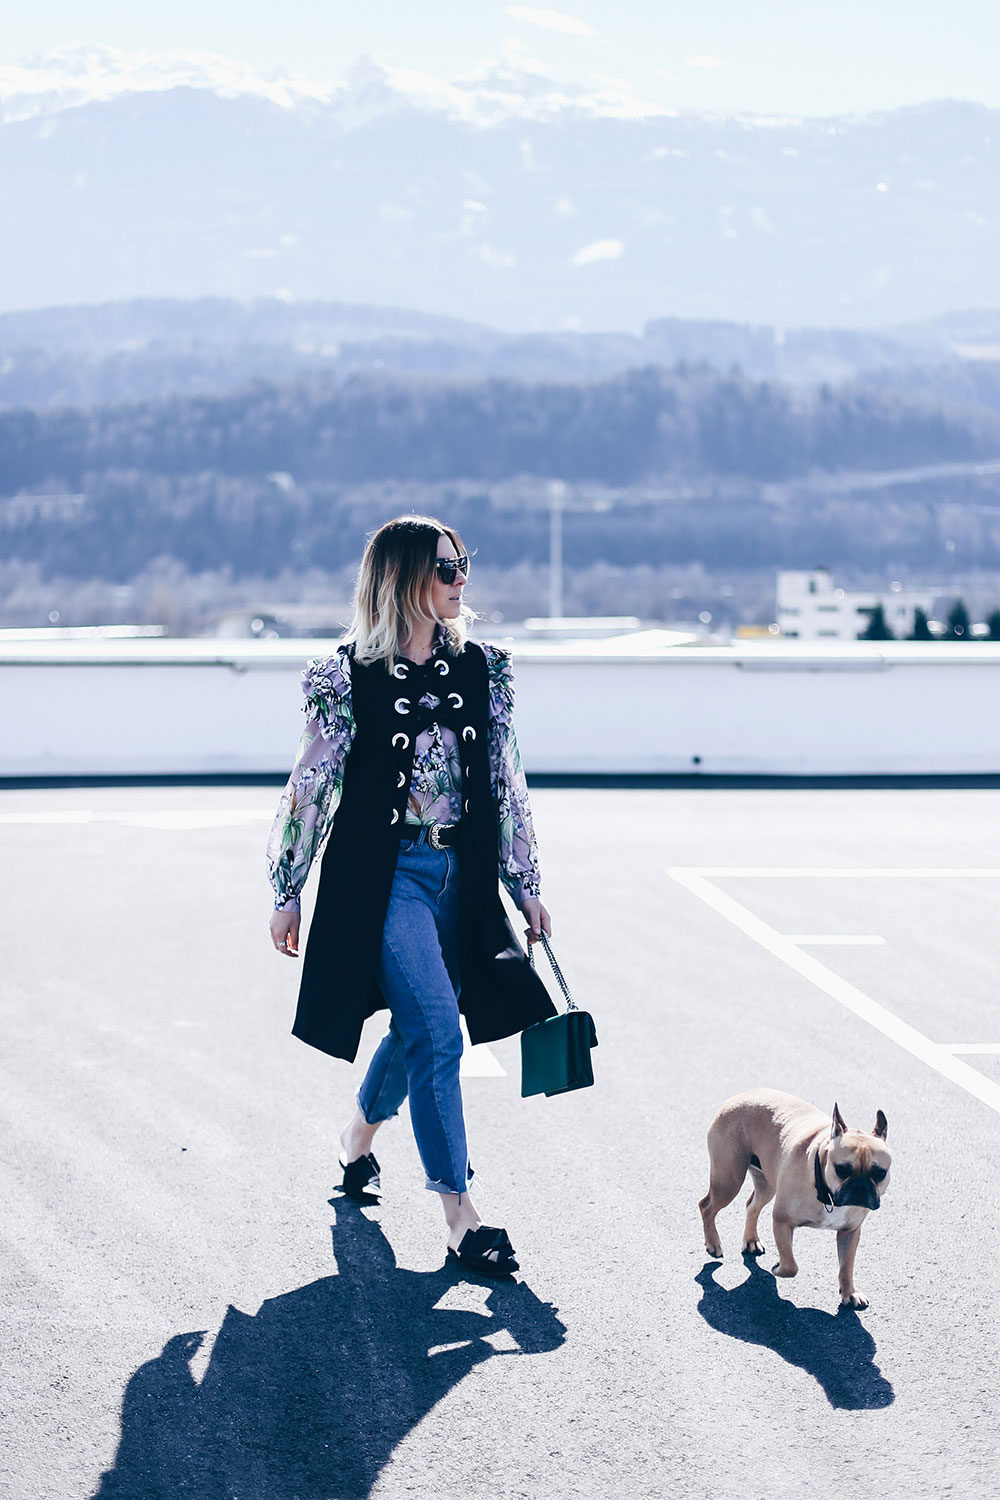 Frühlingsoutfit mit Volantbluse, Mom Jeans, Eyelets-Weste, Streetstyle, How to wear, Outfit Blog, Style Blog, Modeblog, Fashionblog, www.whoismocca.com